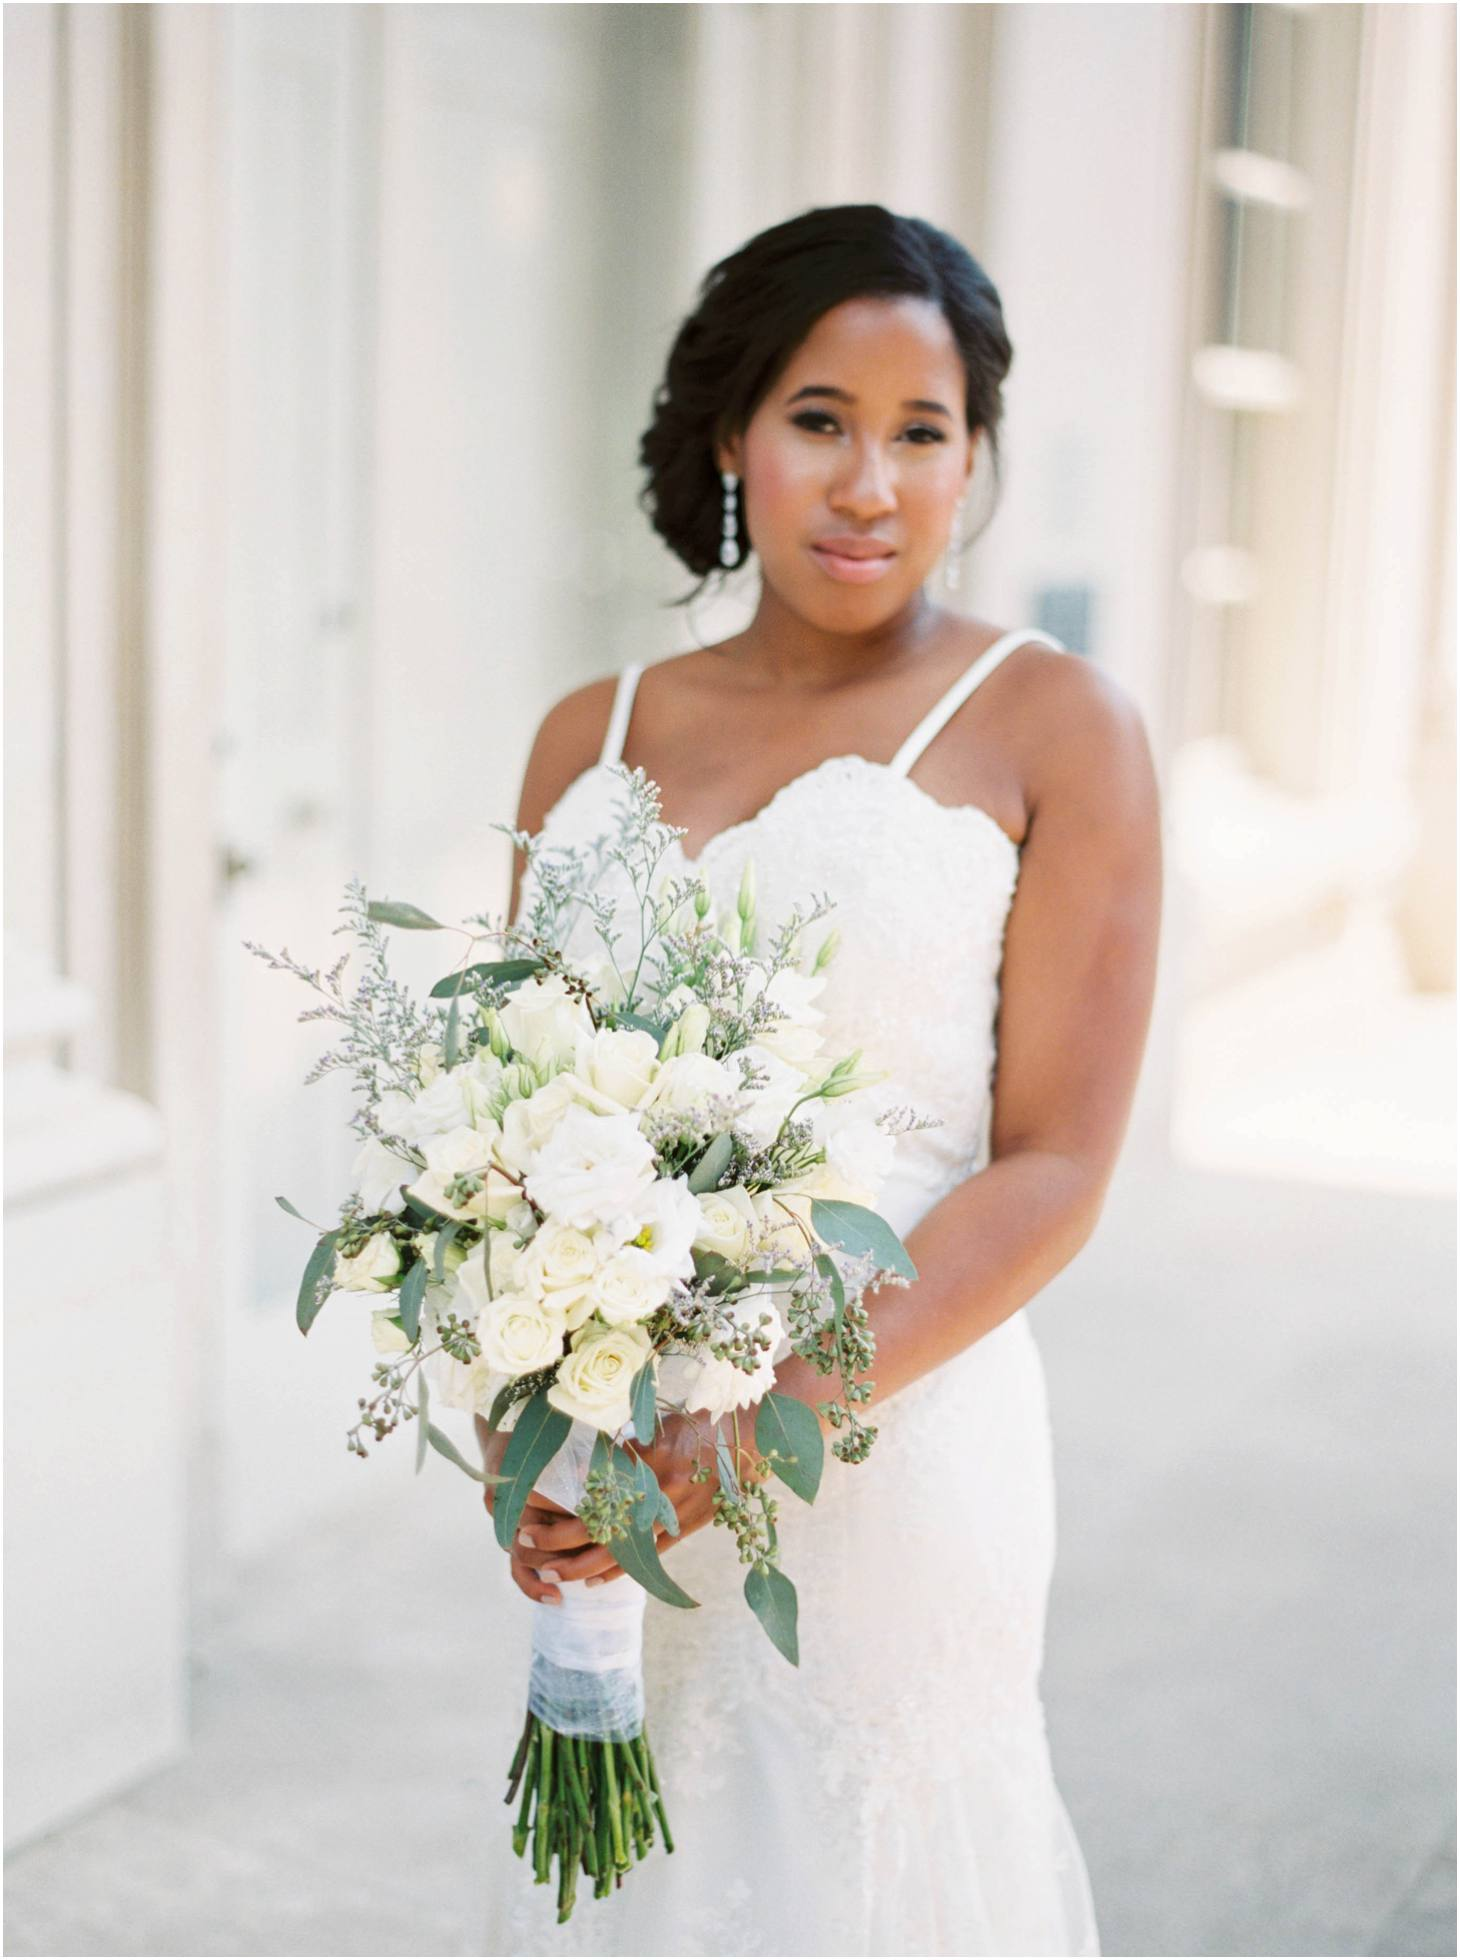 Kim Stockwell Photography Richmond Virginia Film Photographer VFMA Wedding